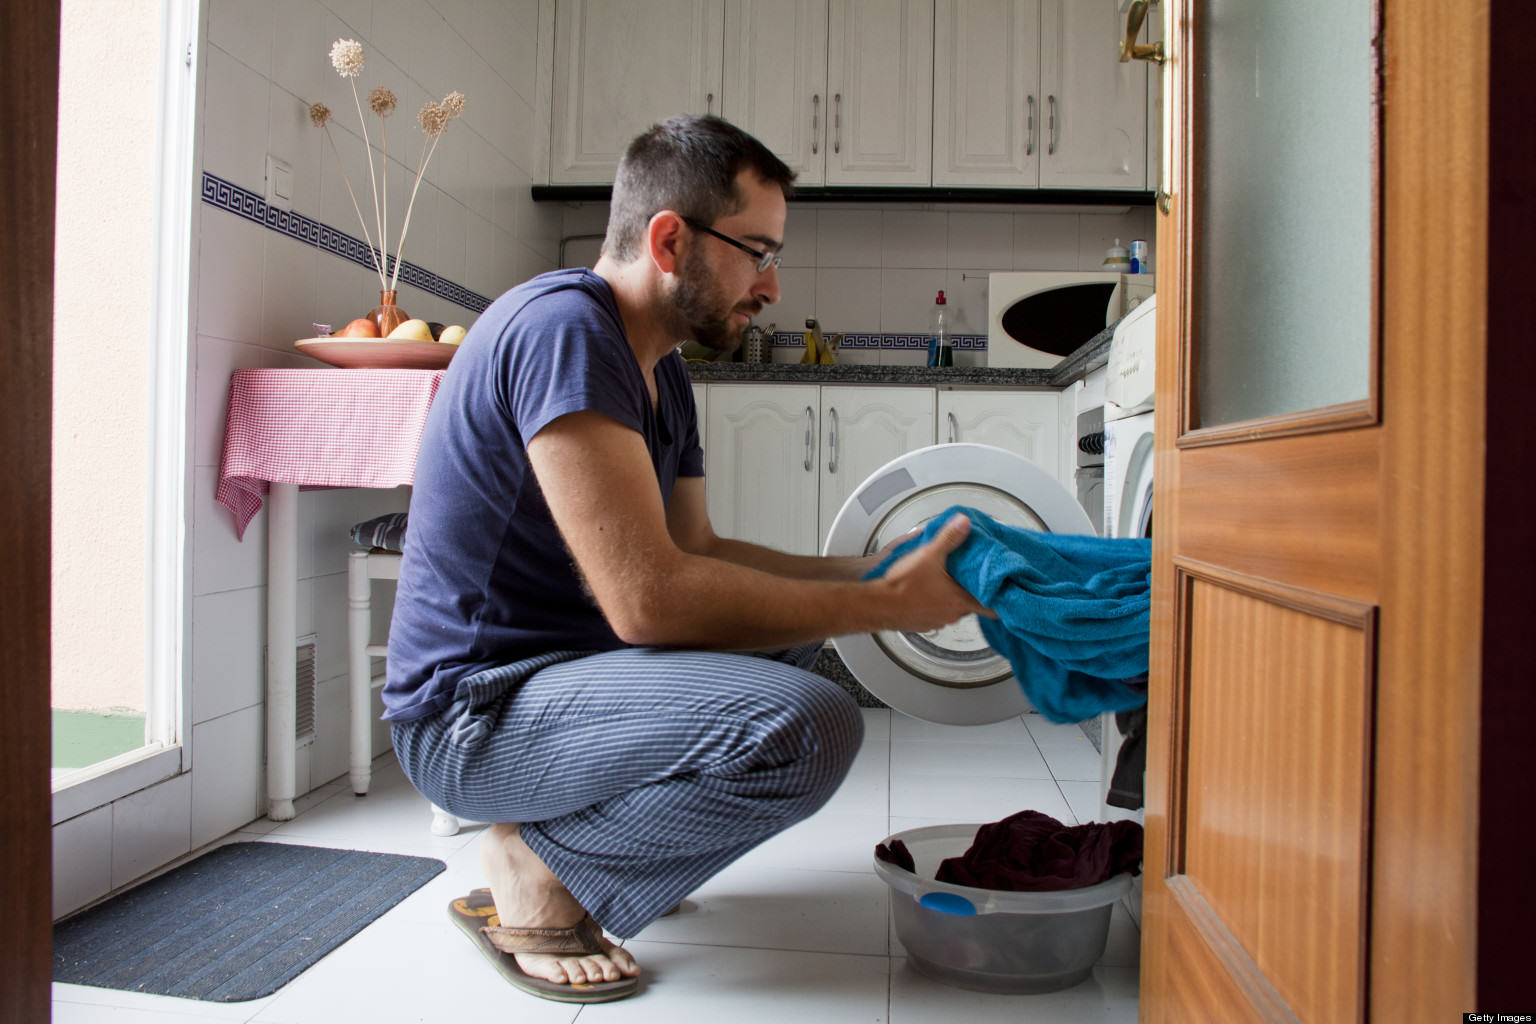 Canadian Man Breaks Into House, Does Laundry And Feeds Cats UNILAD o MAN DOING LAUNDRY getty6